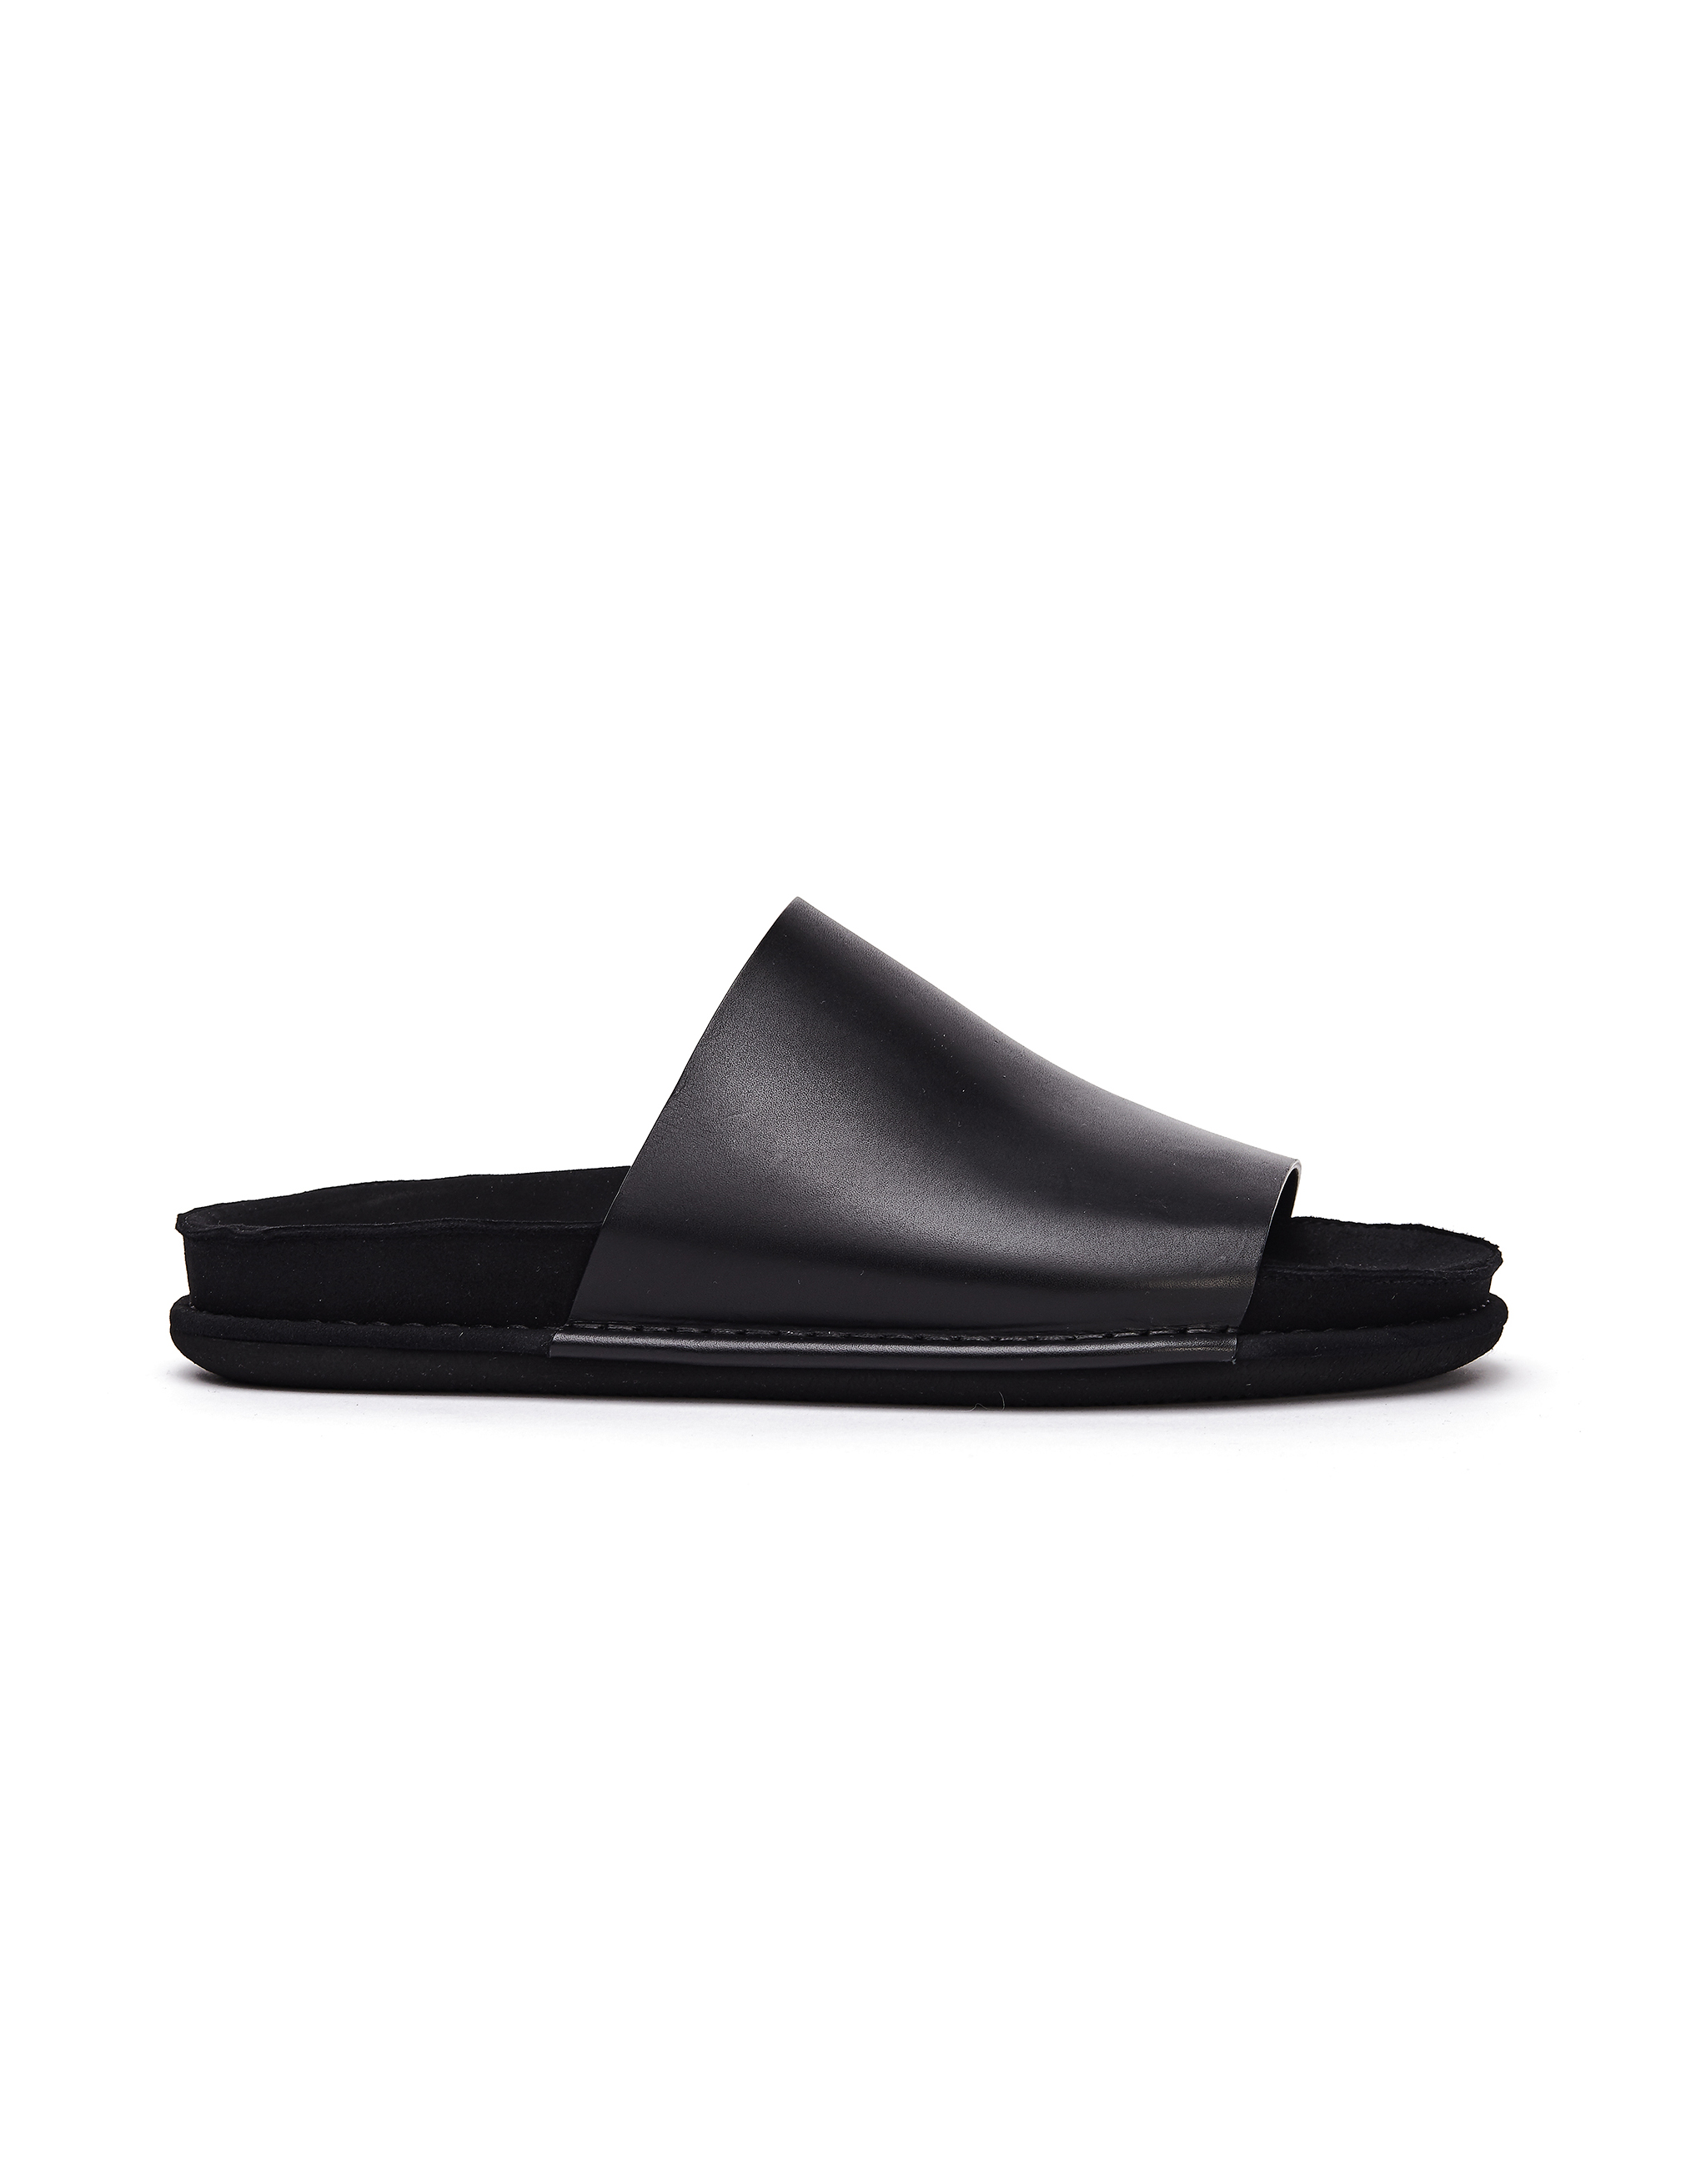 Ann Demeulemeester Black Leather Slippers